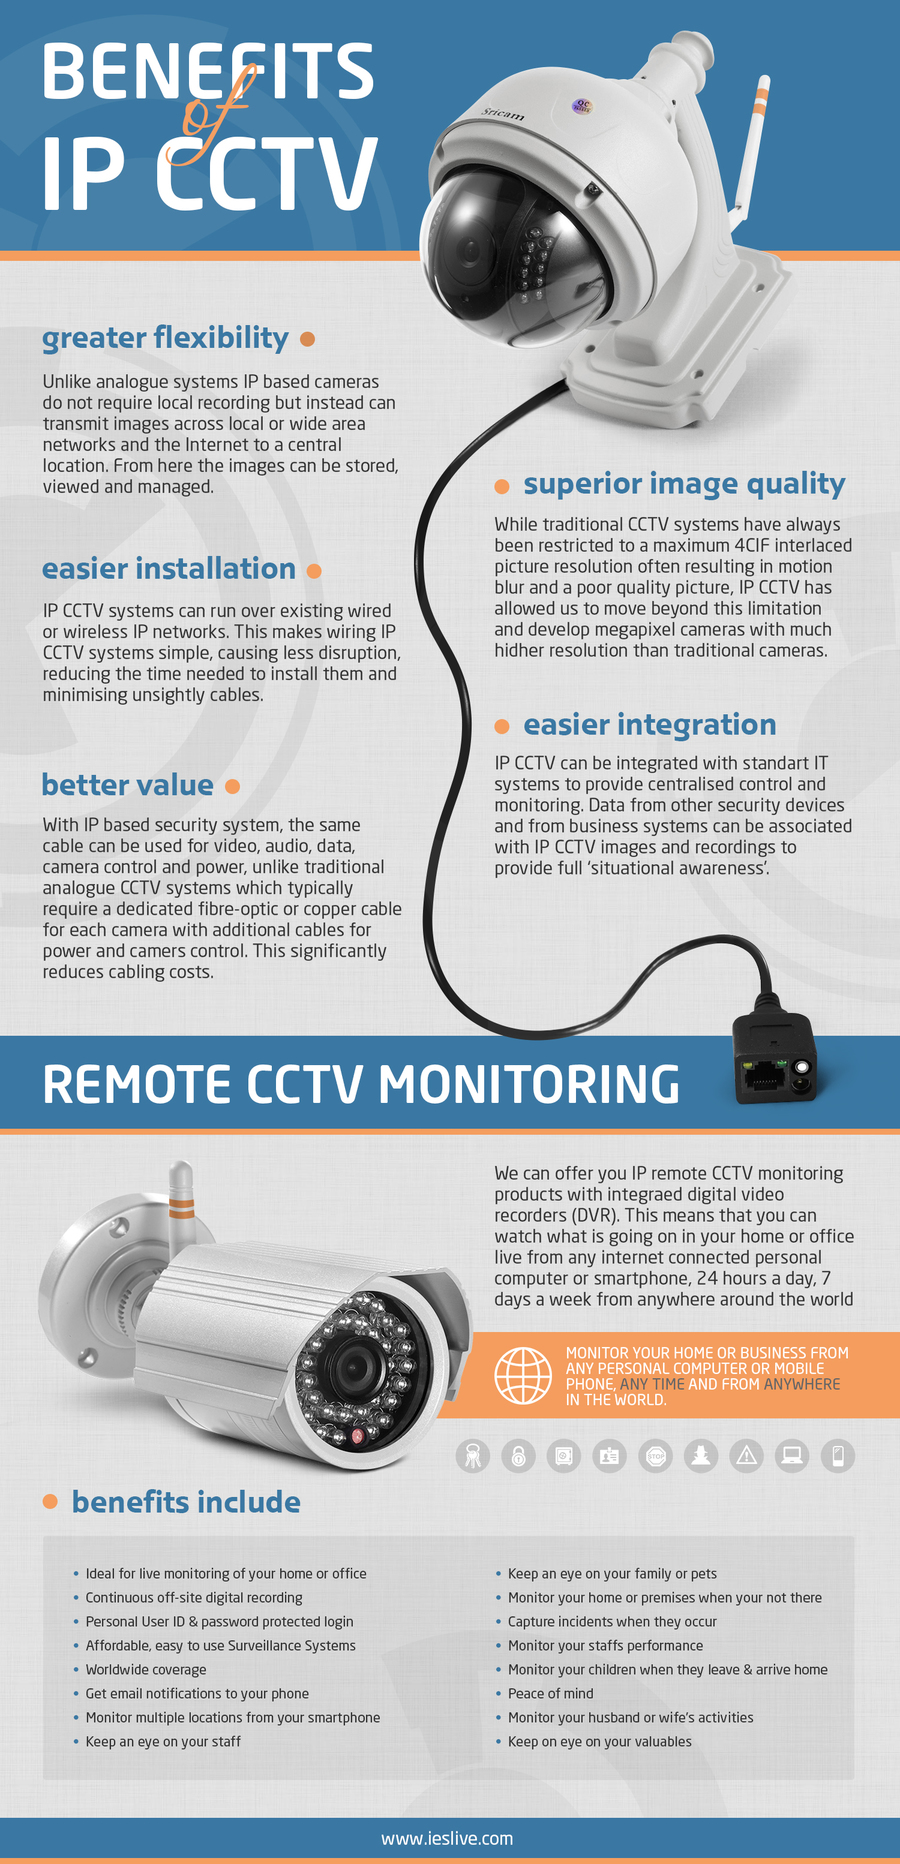 The Benefits of IP CCTV by IESlive